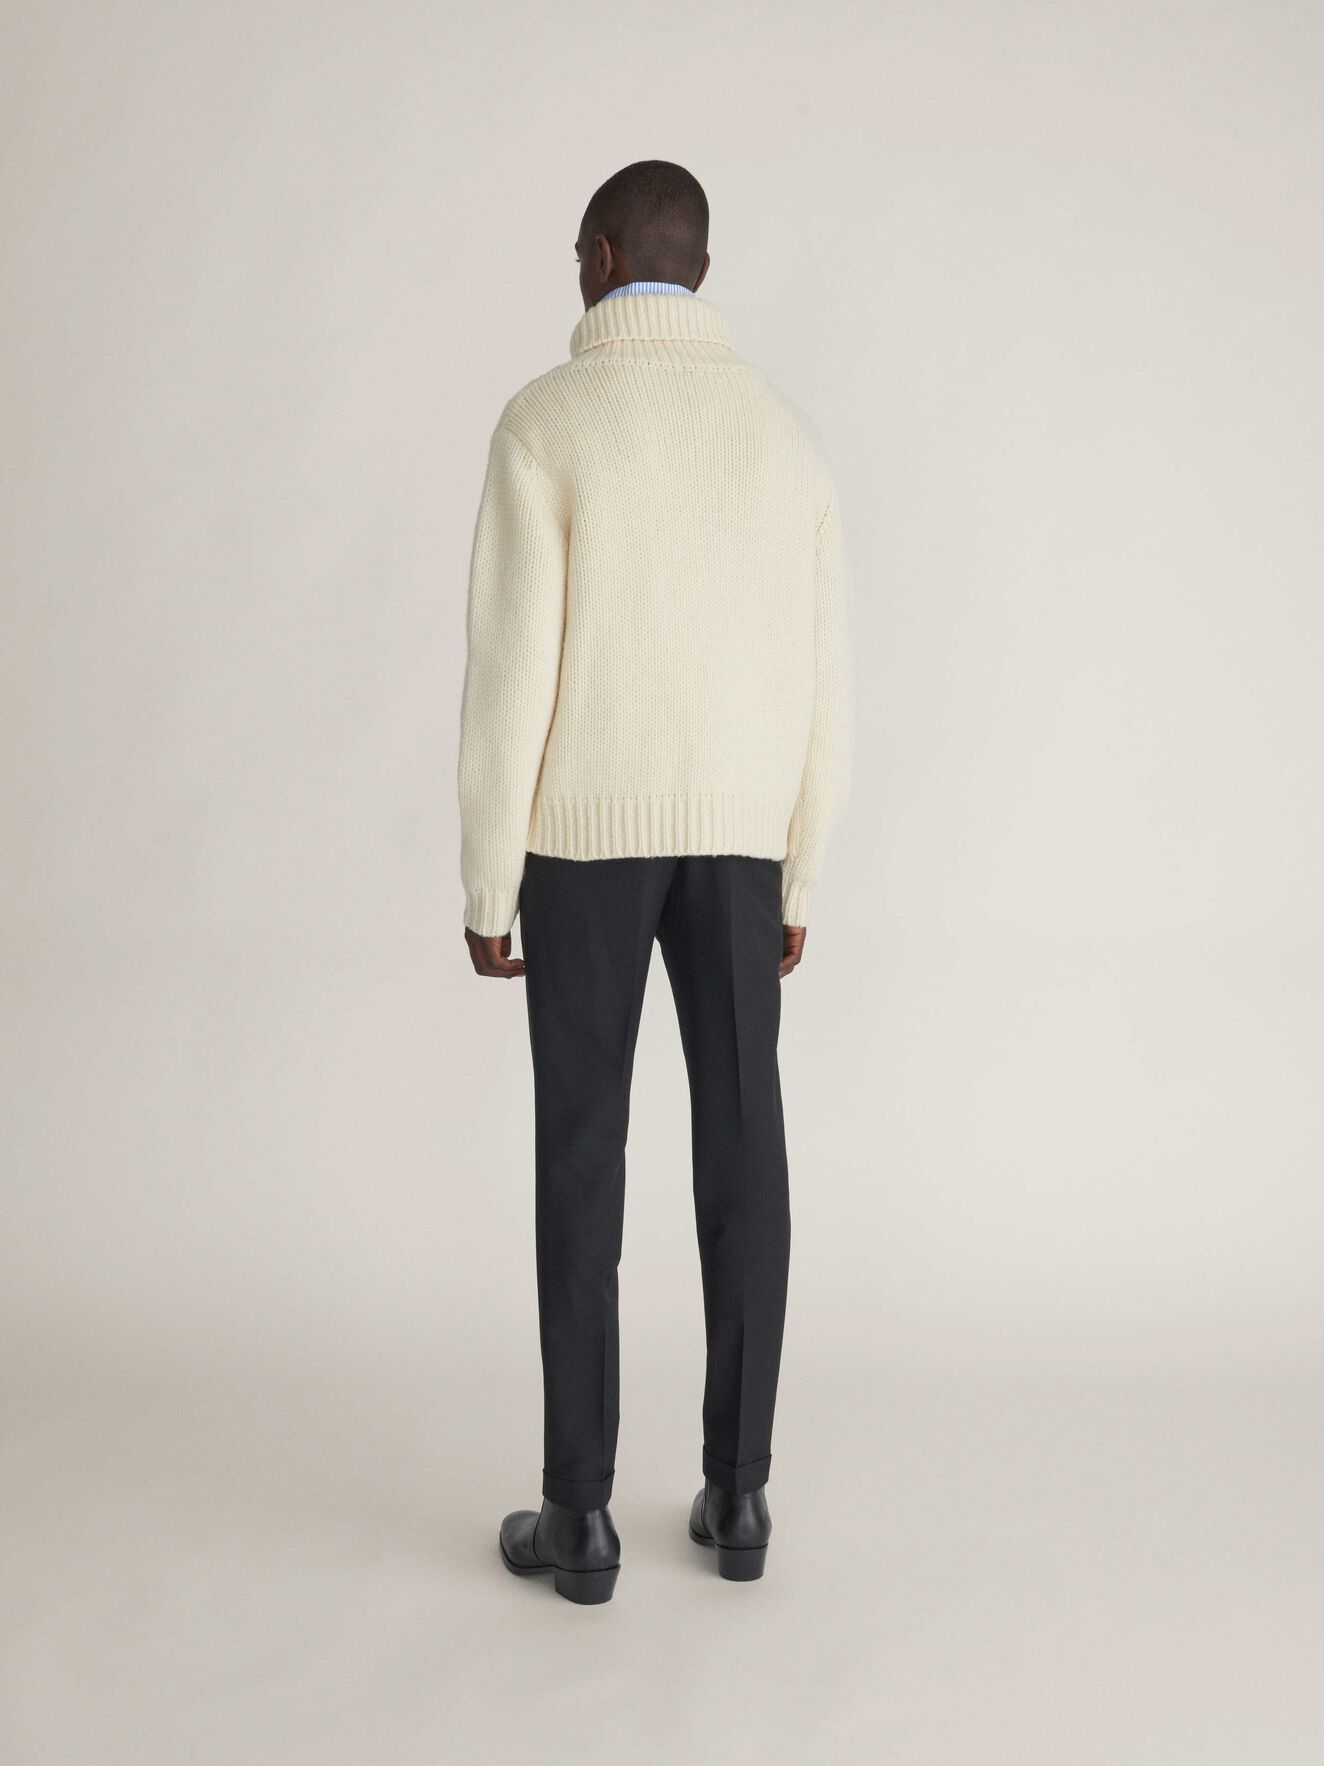 Nowell Pullover in Gardenia from Tiger of Sweden